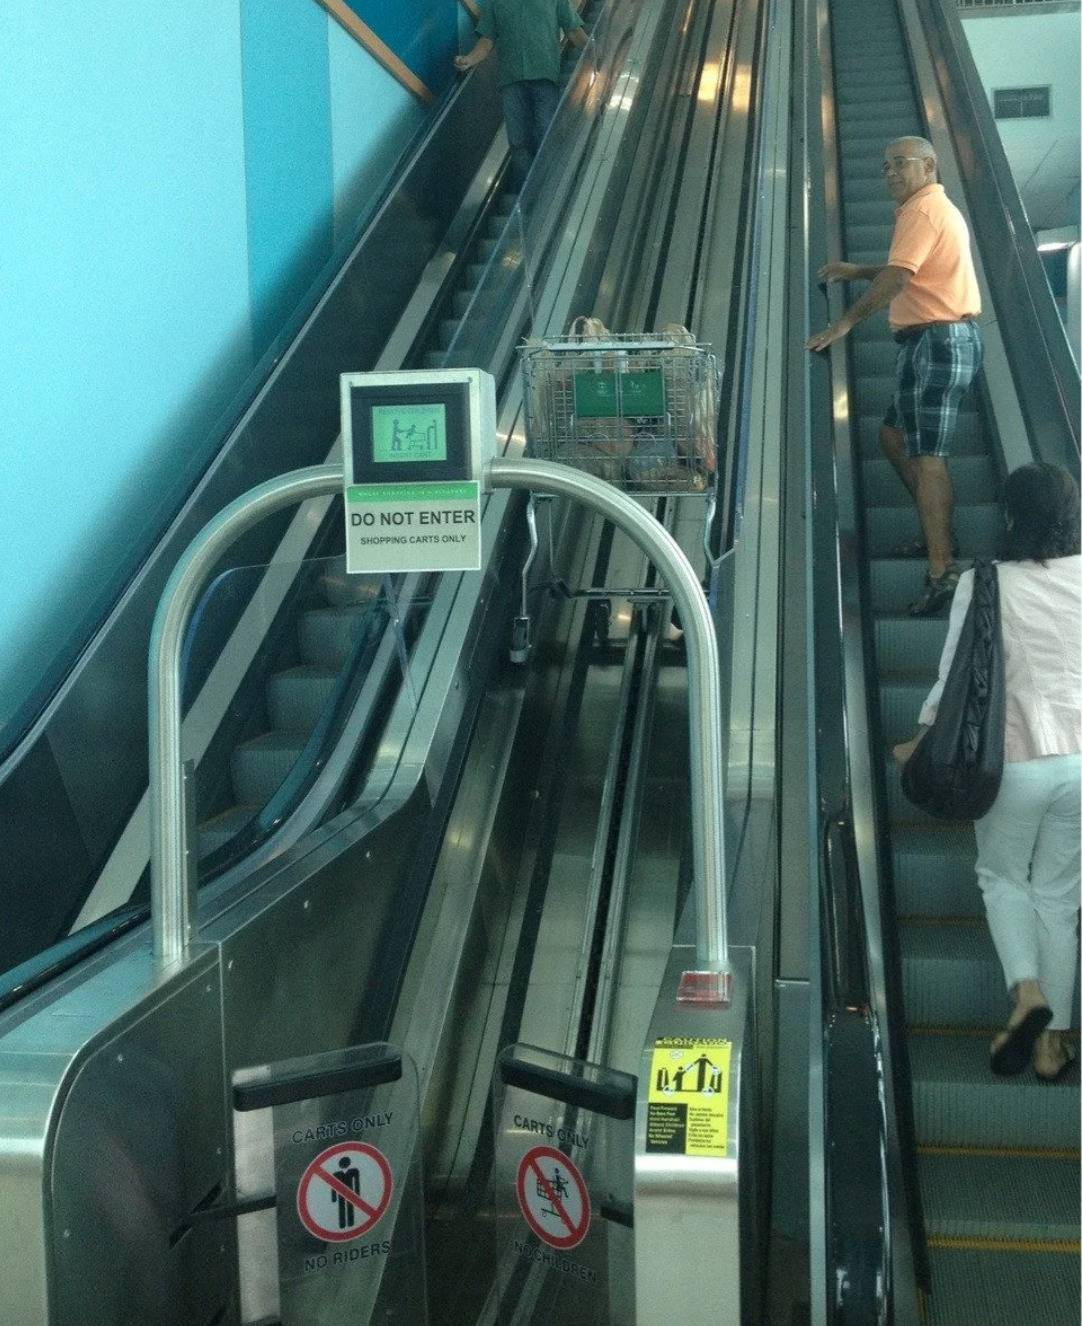 escalator for humans and one in center for shopping carts